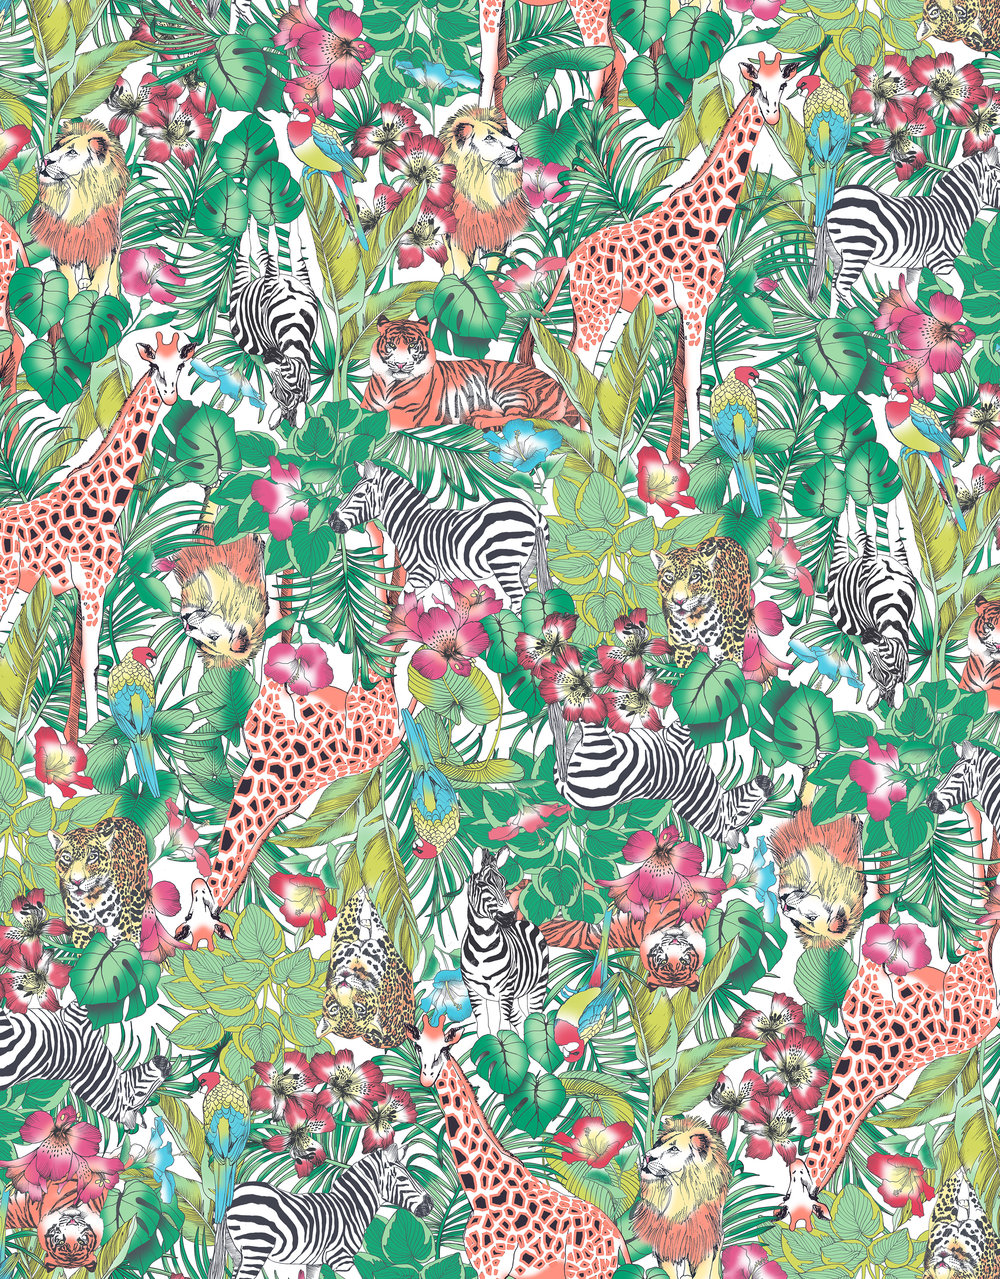 jungle-animal-print-pattern.jpg